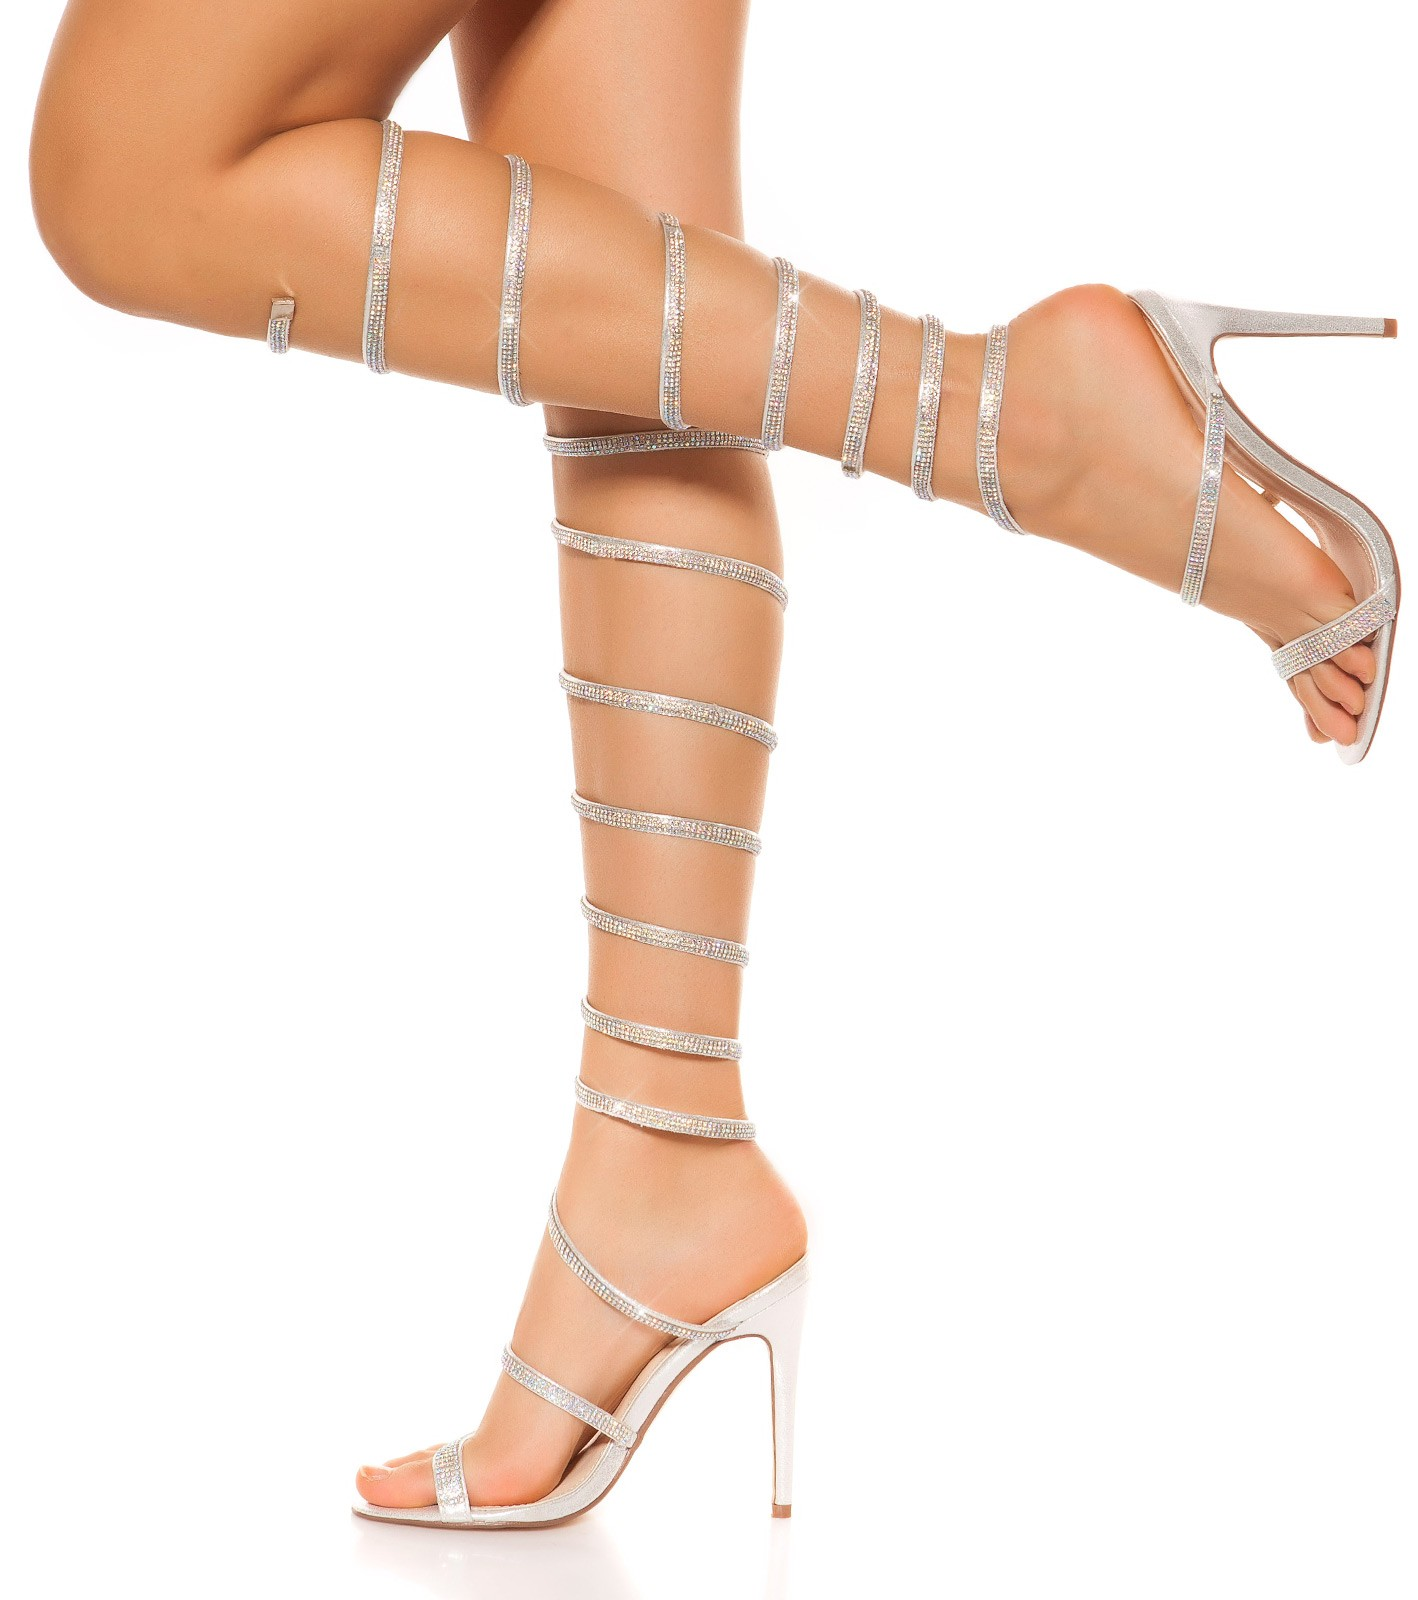 f002063e0b llAll OVer Strappy High Heels with rhinestones  Color SILVER Size 36 0000SY-039 SILBER 21